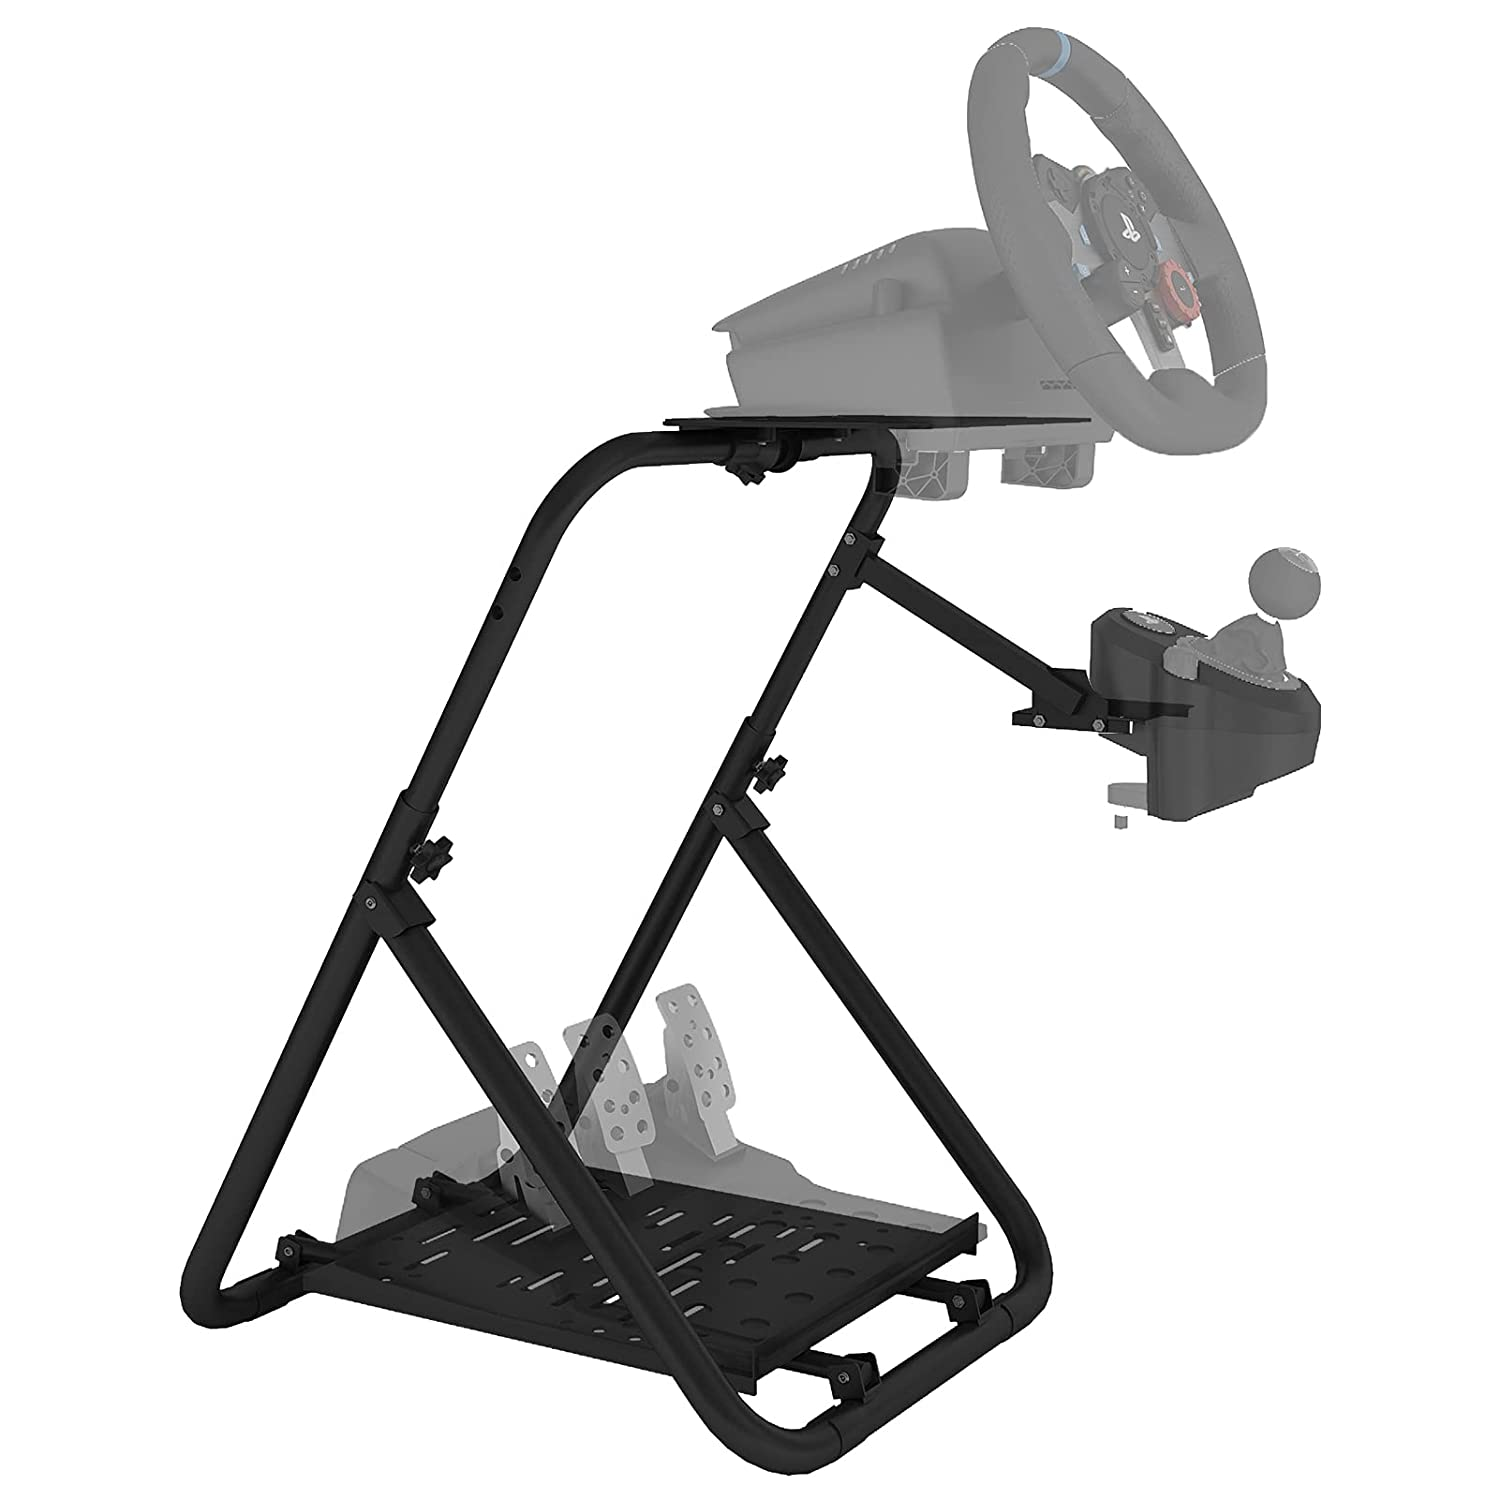 DIWANGUS Racing Steering Wheel Stand Collapsible Tilt-Adjustable Racing Stand for Thrustmaster,Logitech G25 G27 G29 G920 Supporting TX Xbox PS5 PC (Wheel&Pedals Not Included)